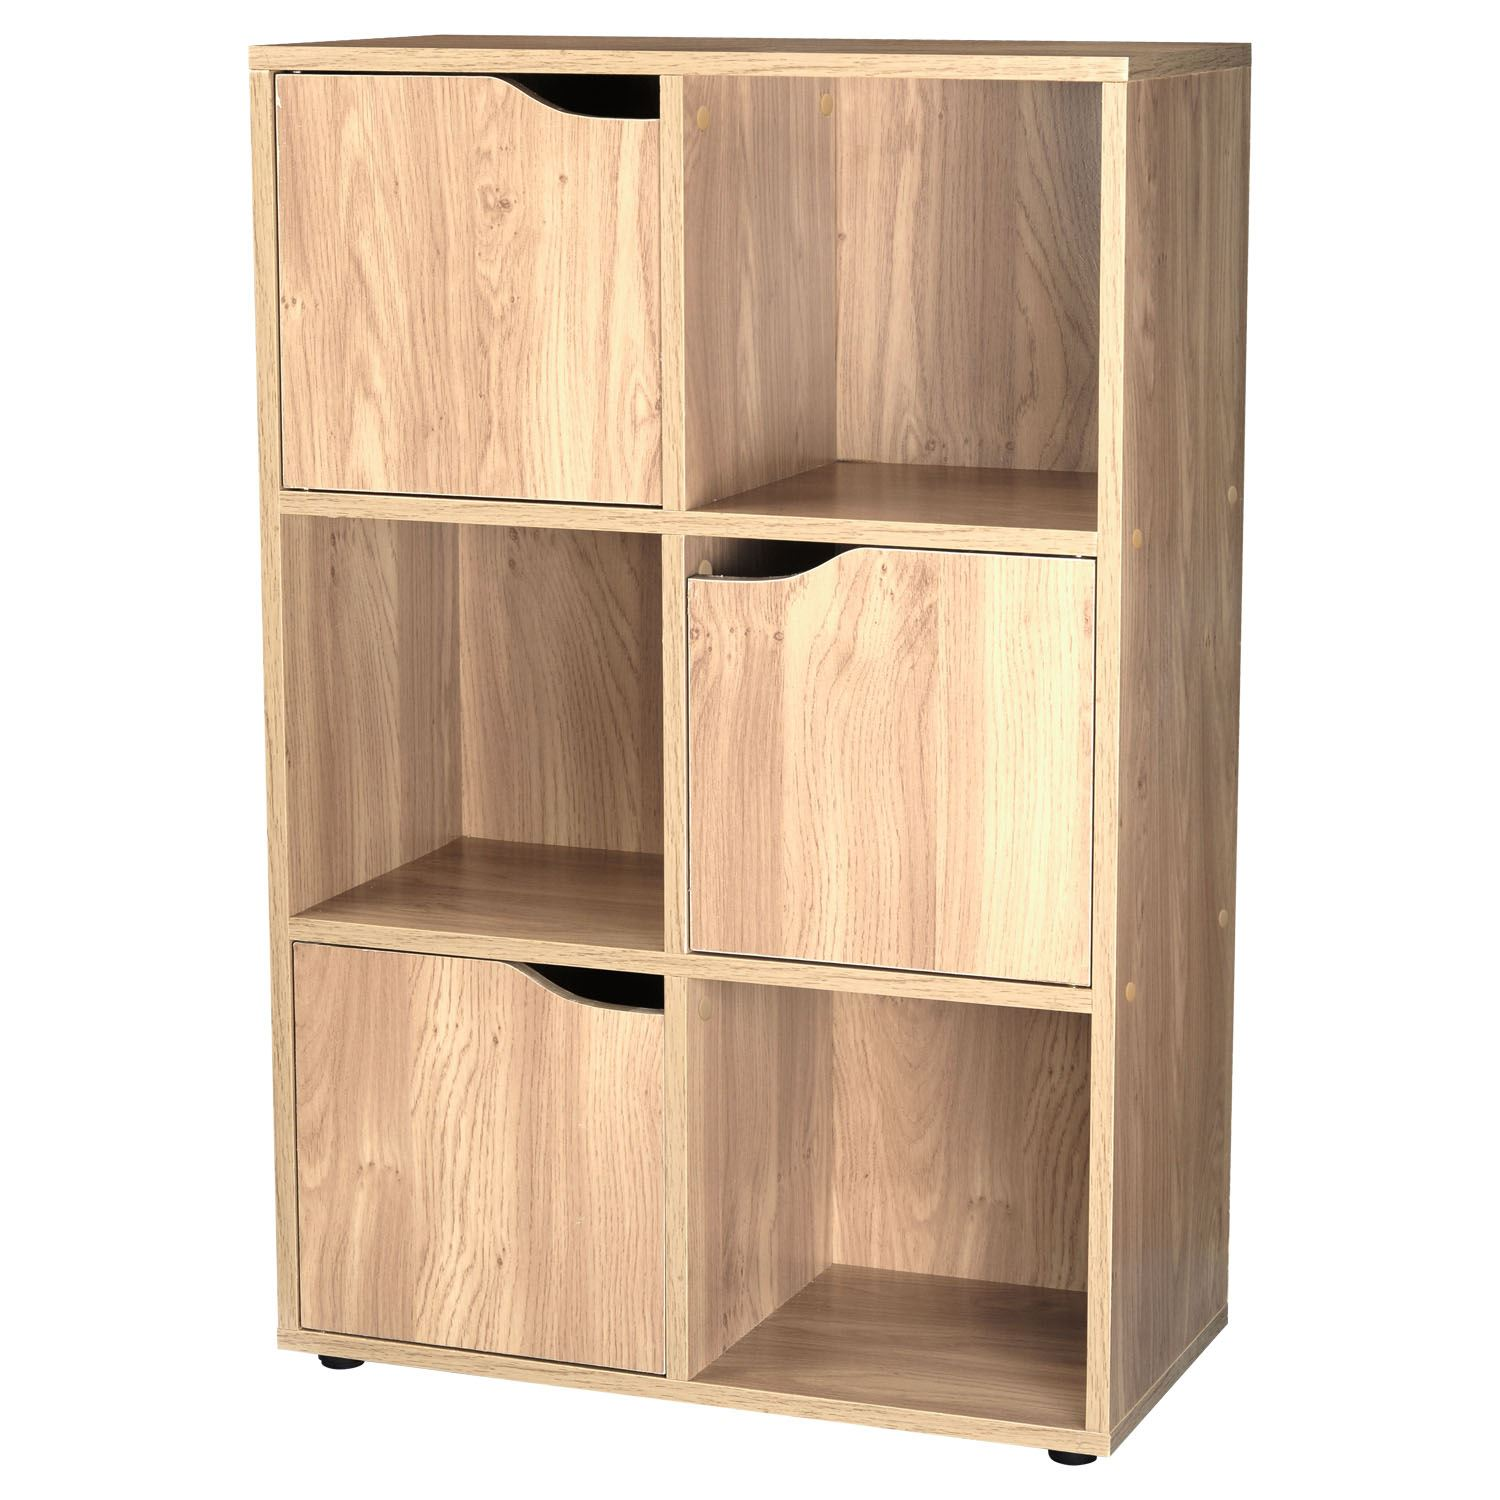 Marvelous photograph of Details about 3/5 Door Oak 6/9 Cube Wooden Bookcase Storage Display  with #B47717 color and 1500x1500 pixels